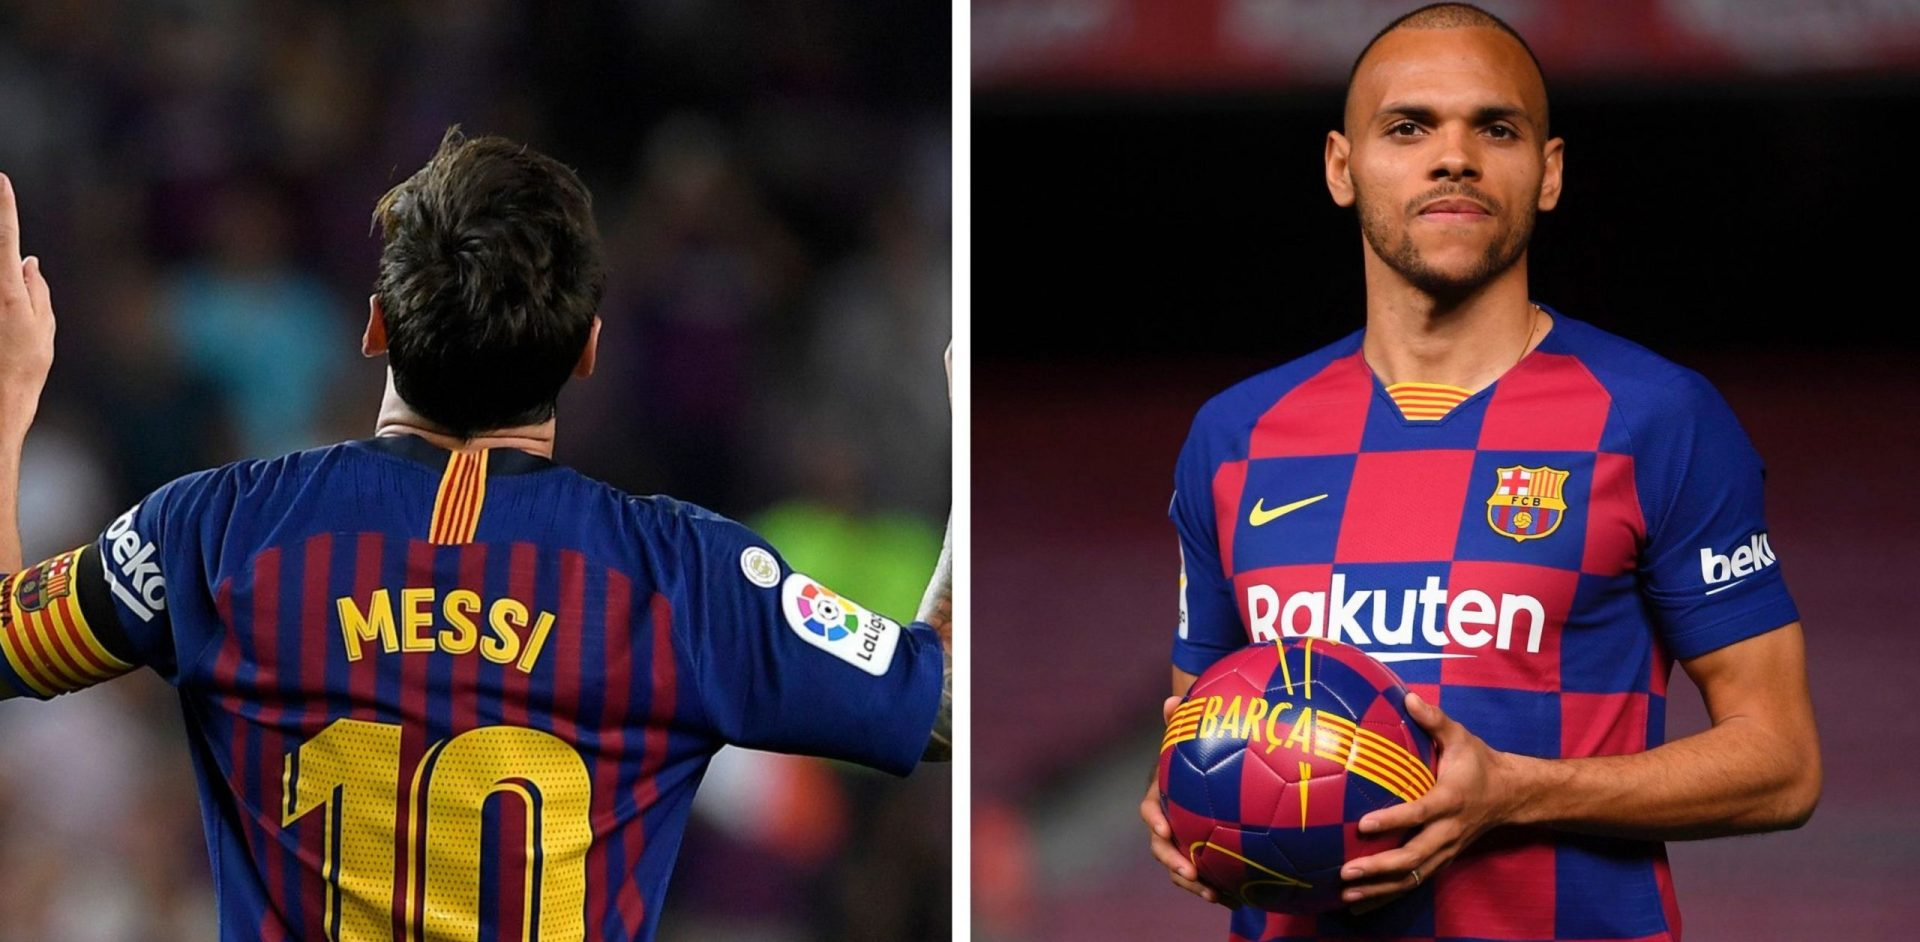 A new messiah?: Braithwaite wants Blaugrana No.10 should Messi leave - THE SPORTS ROOM